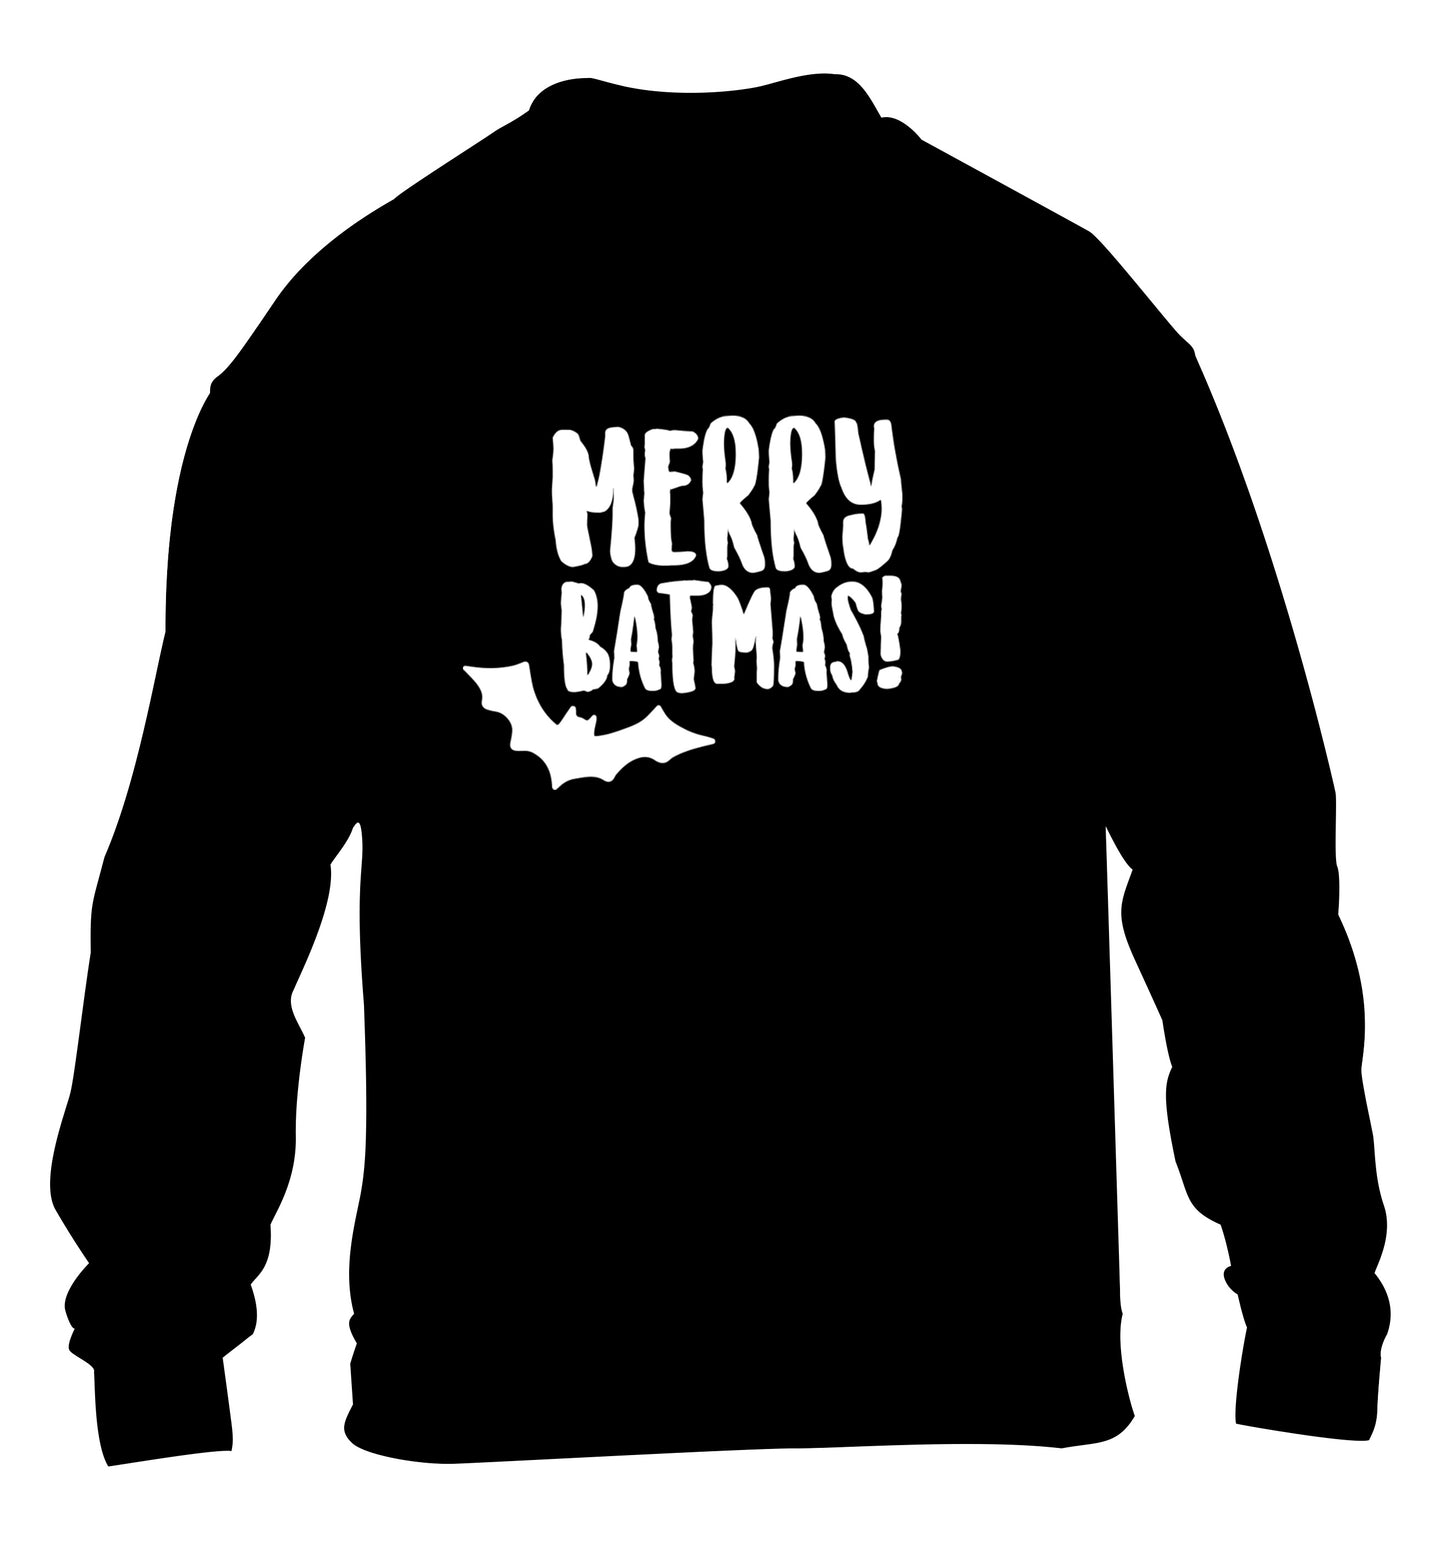 Merry Batmas children's black sweater 12-14 Years